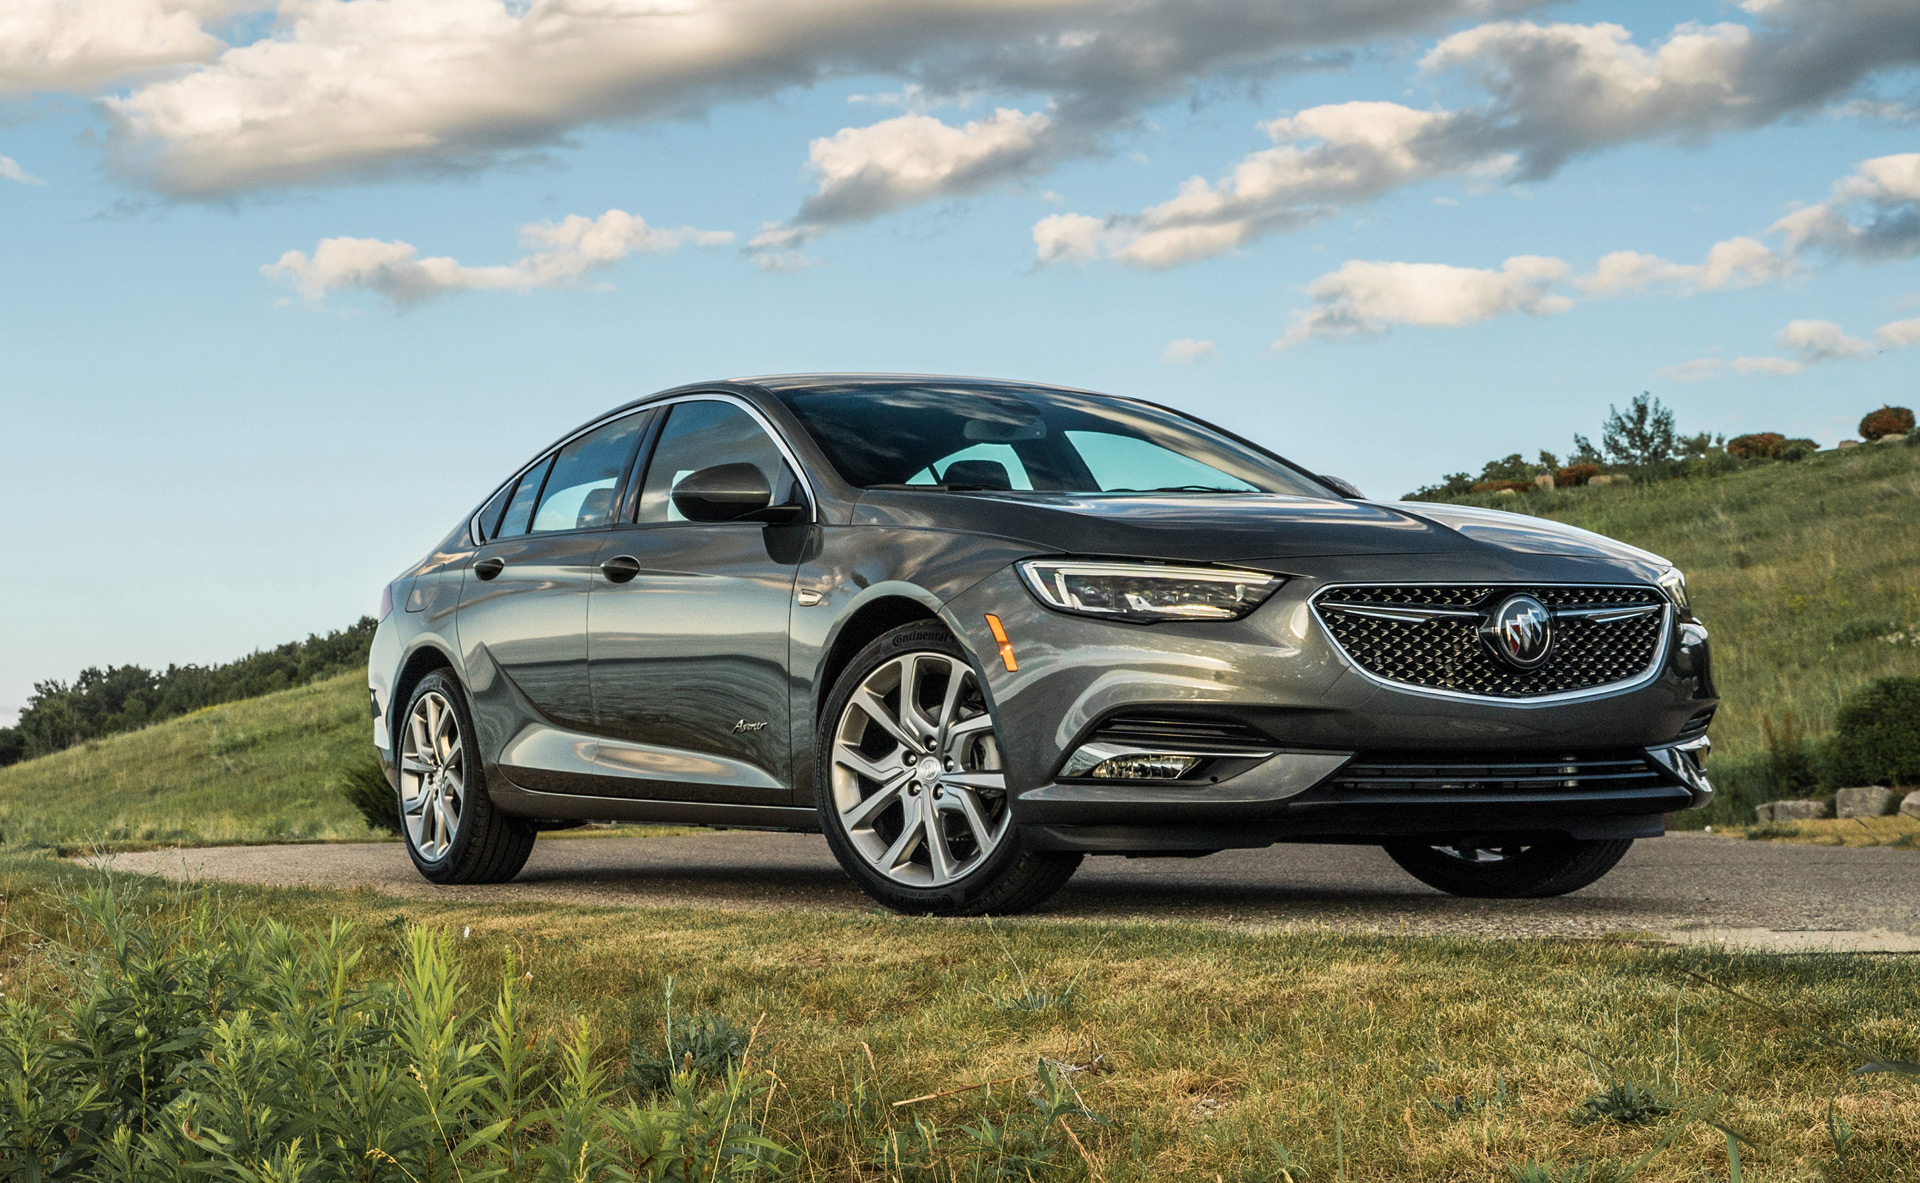 2019 Buick Regal Offered With Upmarket Avenir Trim New 2022 Buick Regal Production, Pictures, Price